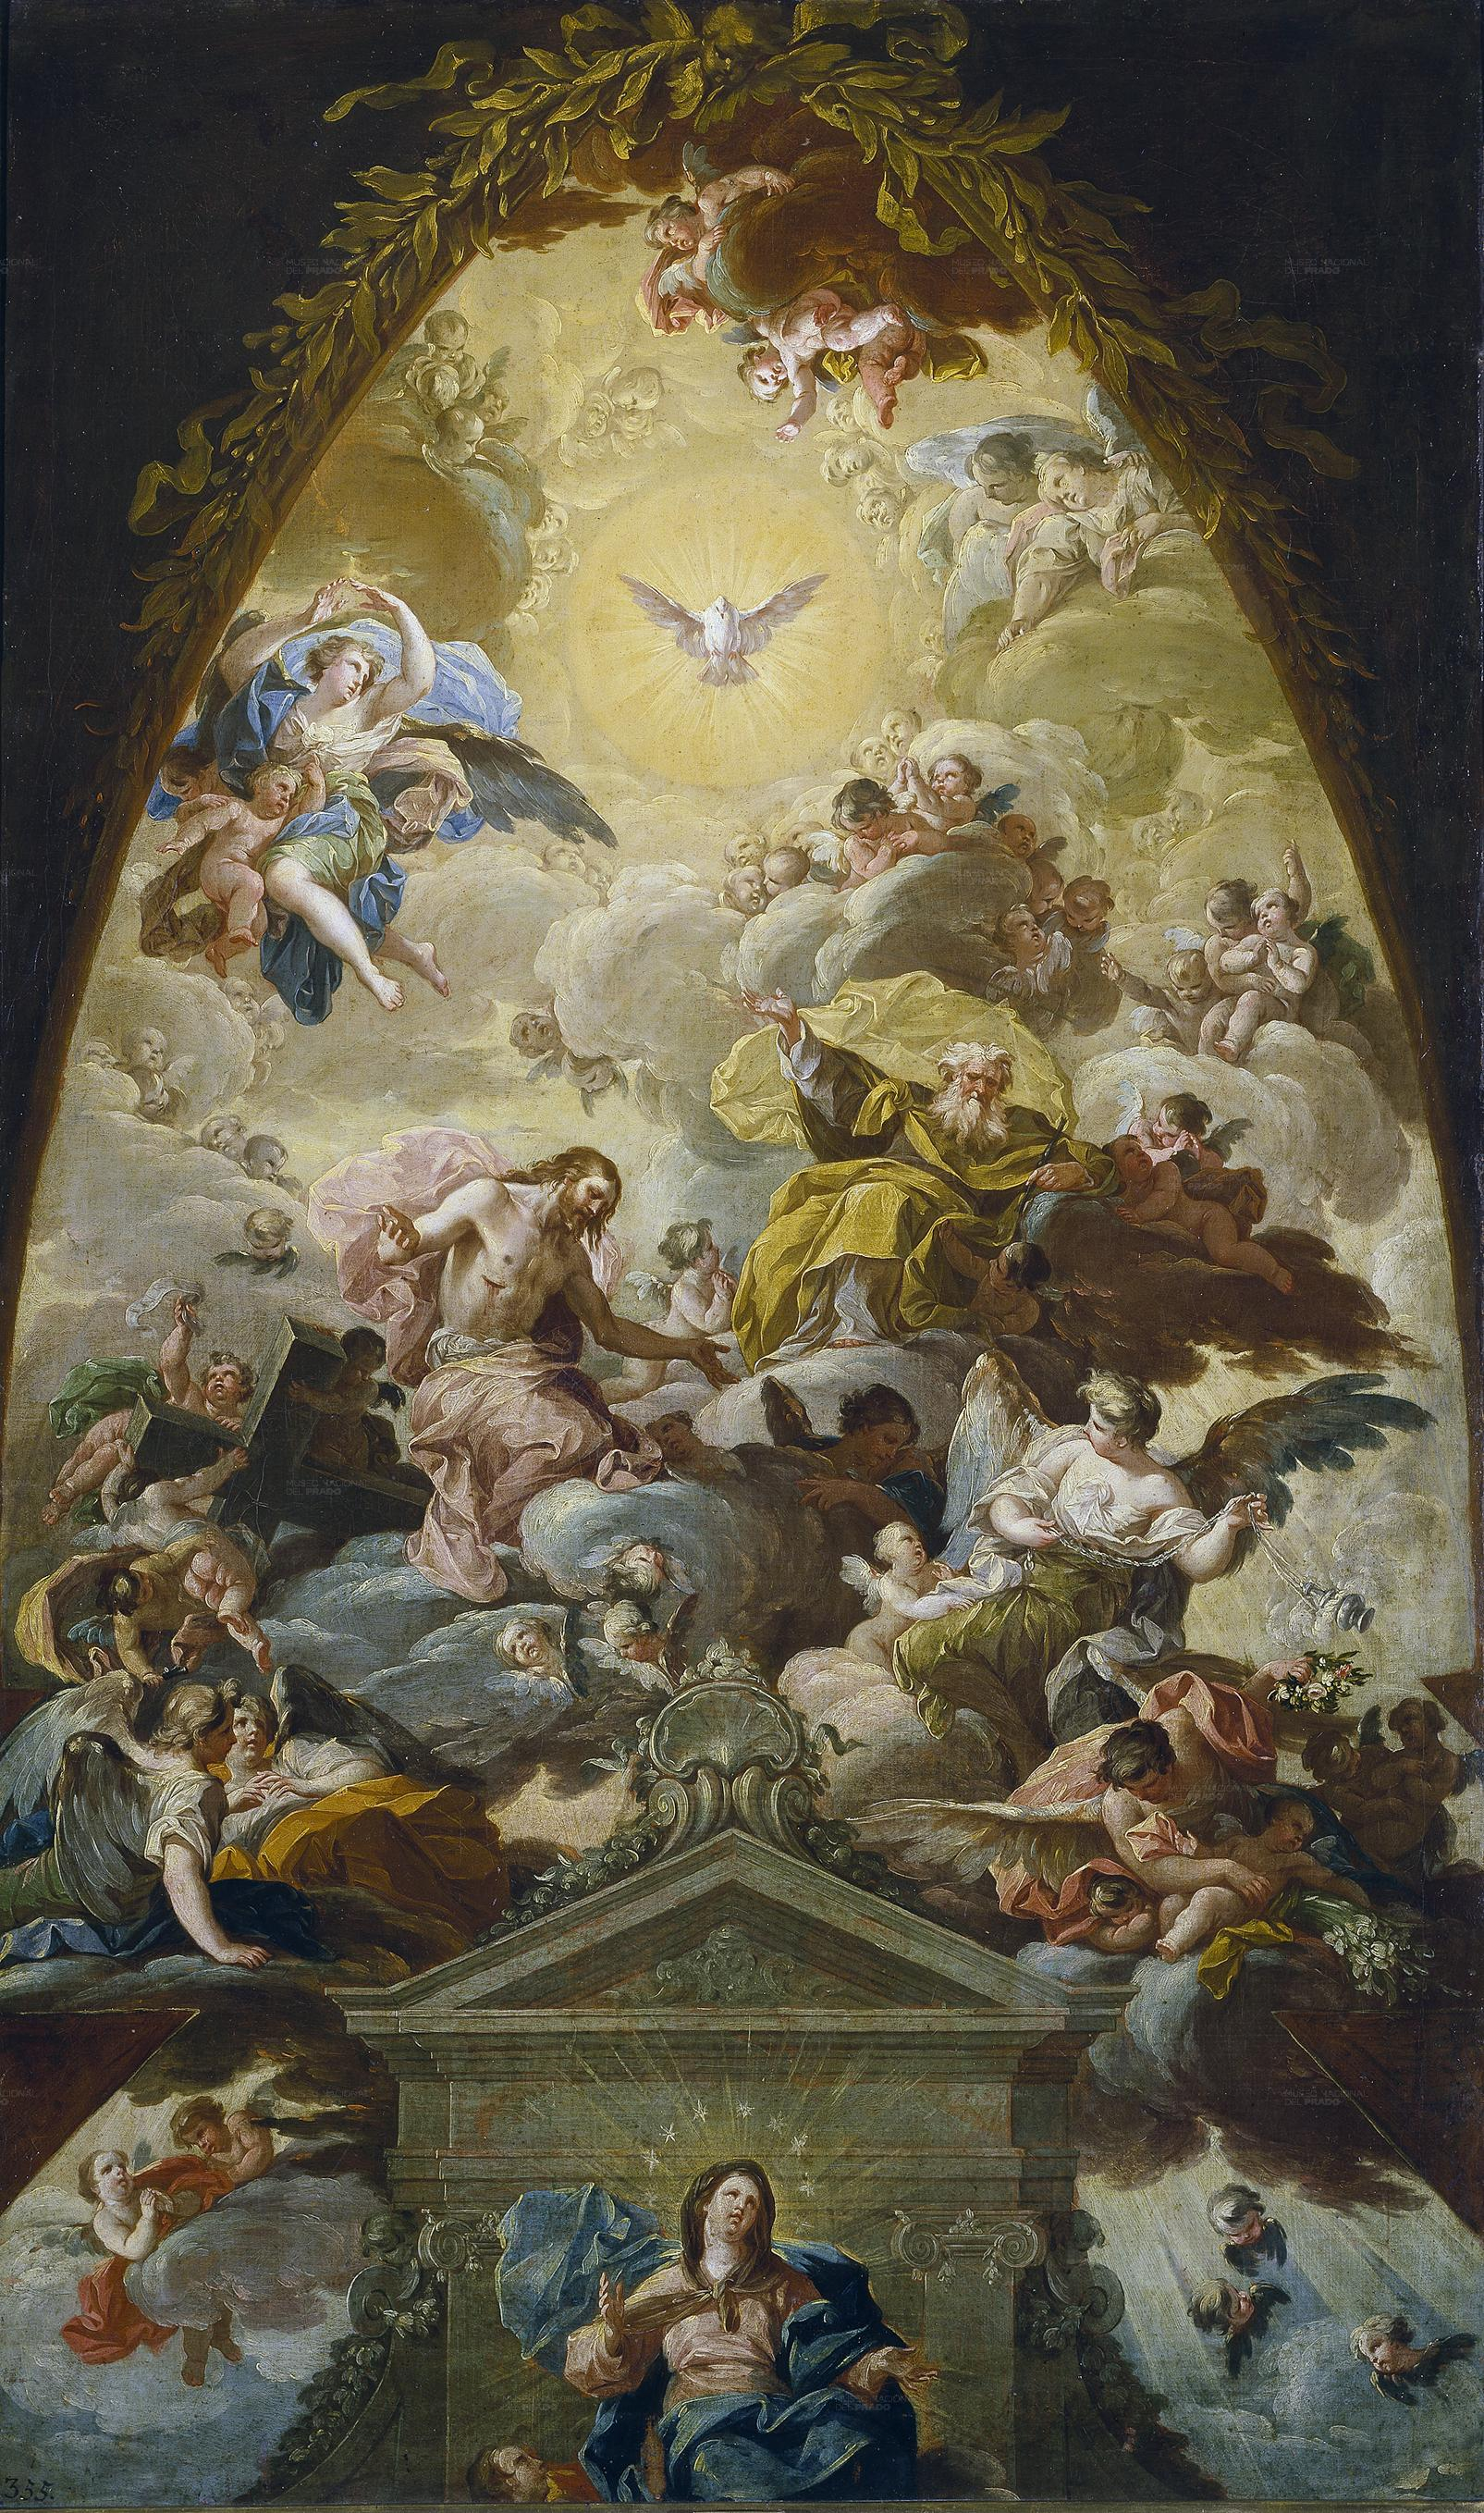 https://upload.wikimedia.org/wikipedia/commons/b/bd/Francisco_Bayeu_Asunci%C3%B3n_de_la_Virgen.jpg